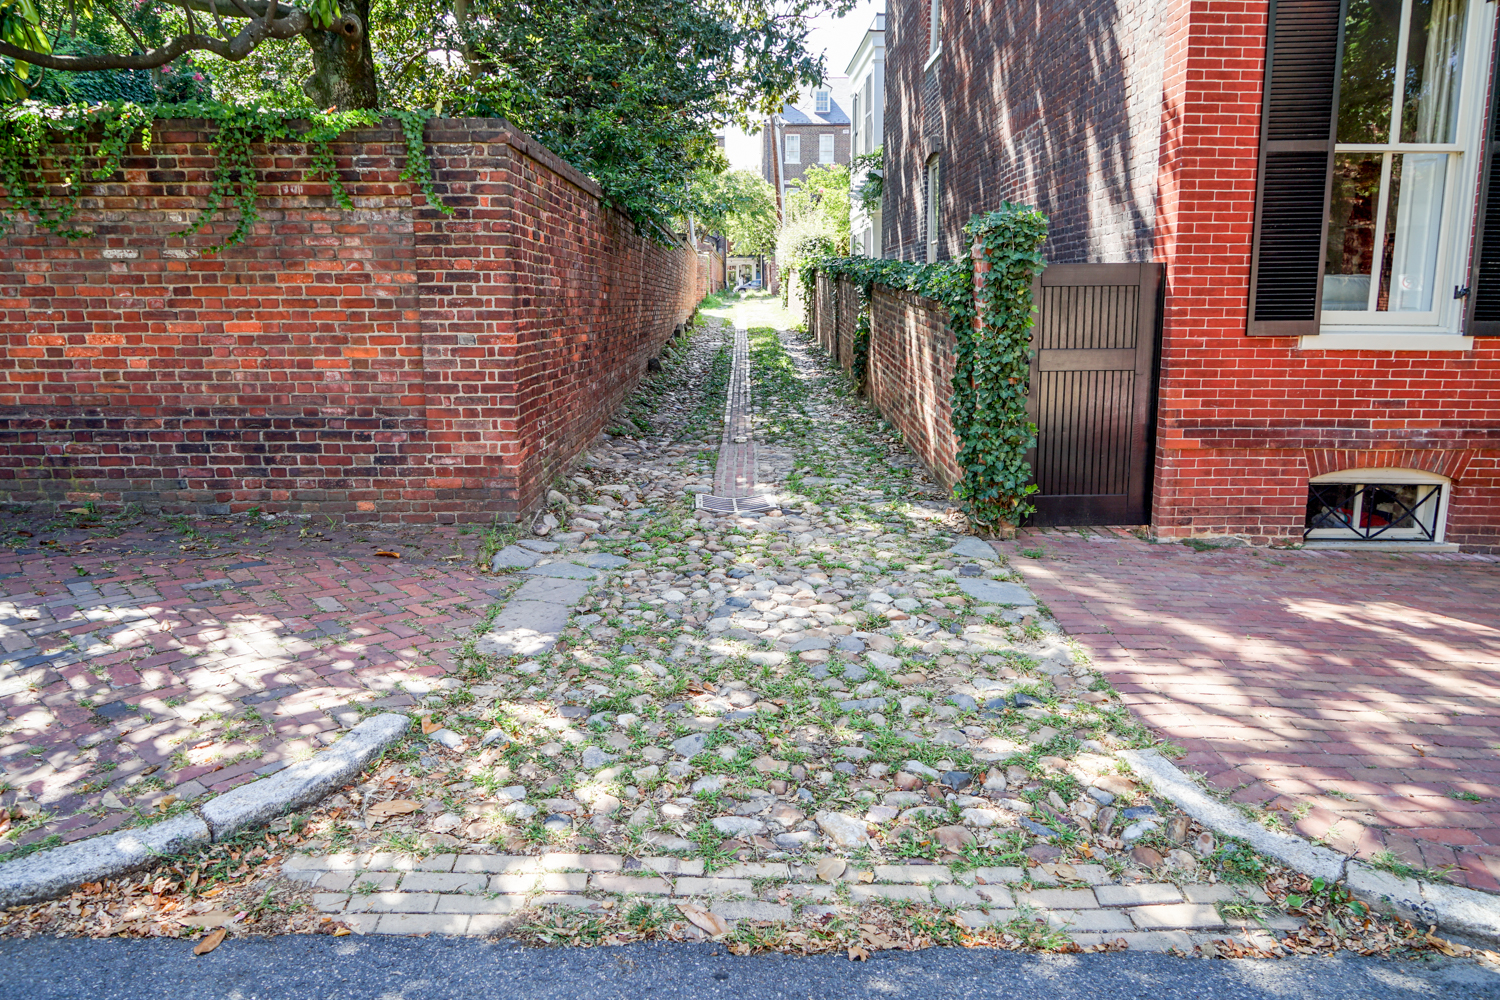 Wales Alley at Lee St.